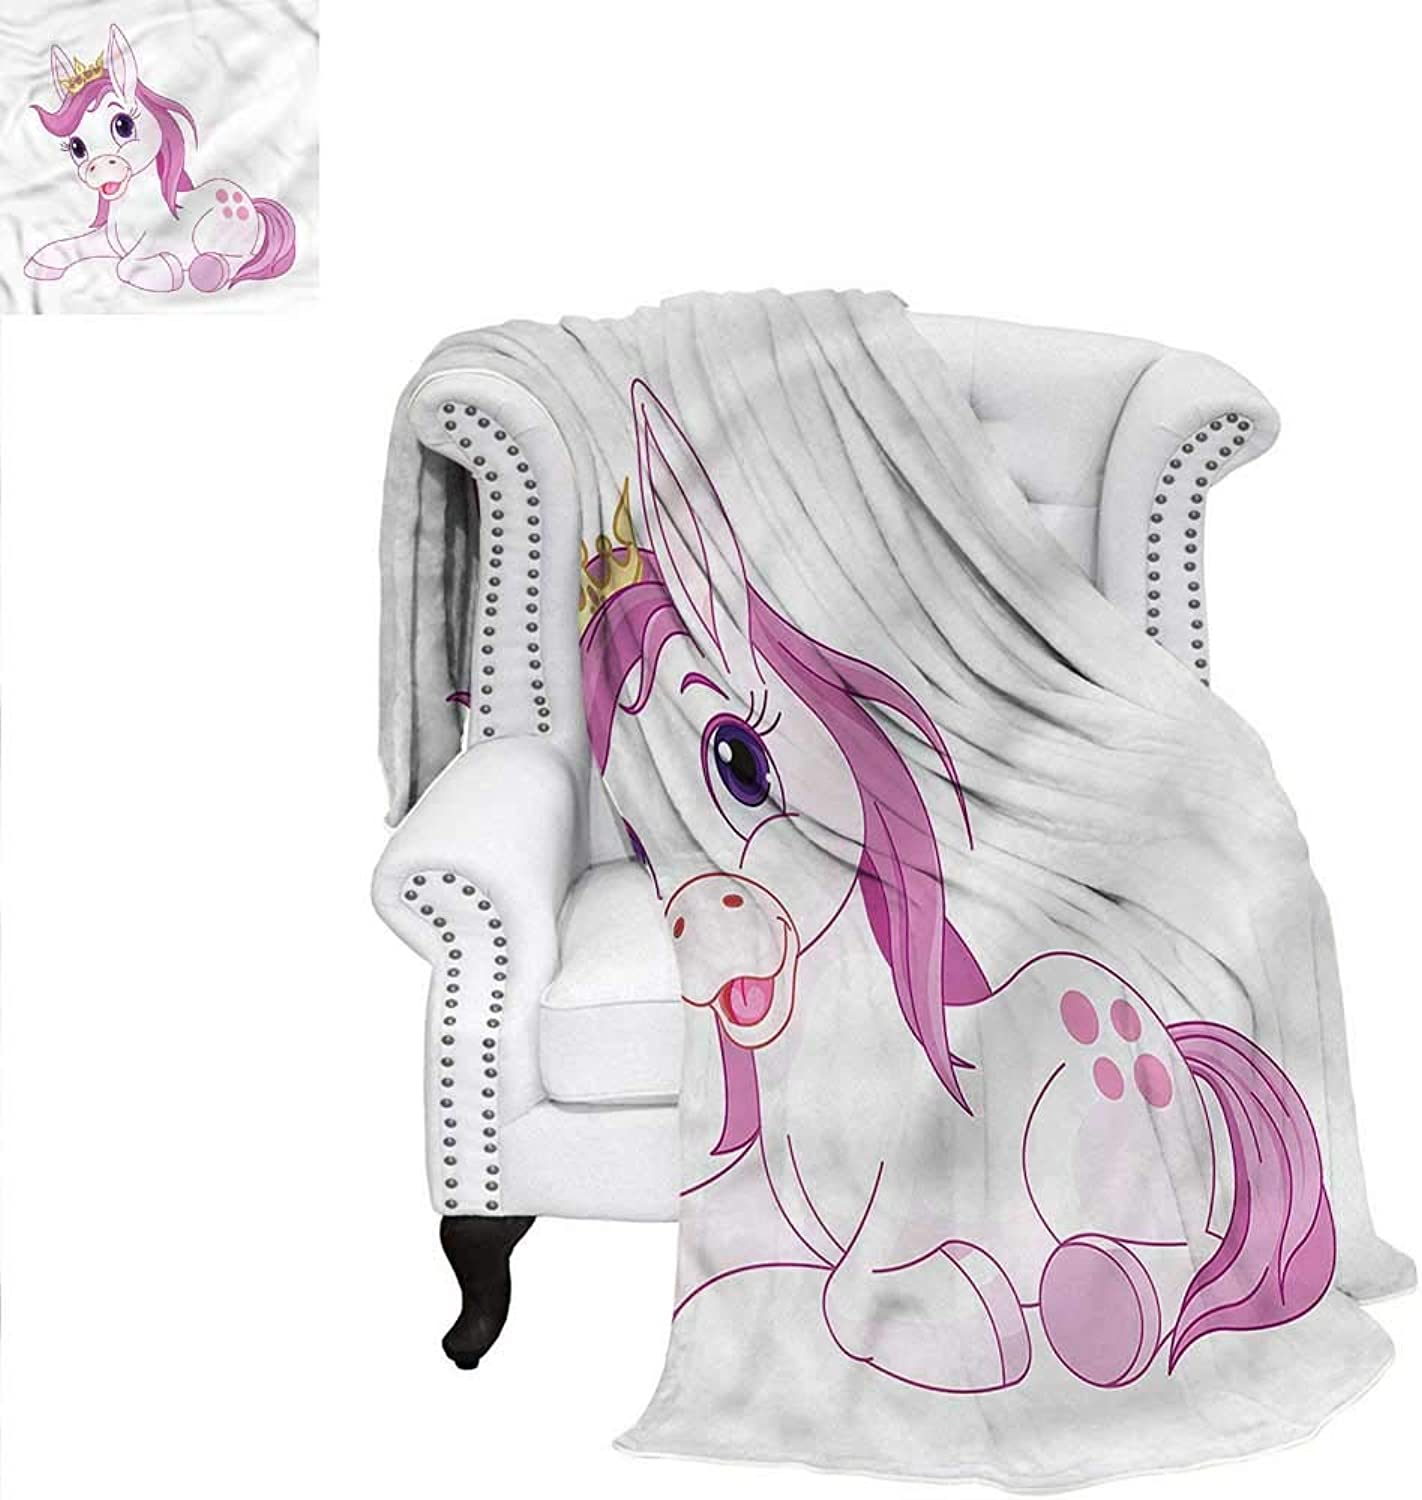 Cute Throw Blanket Fairy Princess Horse Resting Oversized Travel Throw Cover Blanket 60 x50